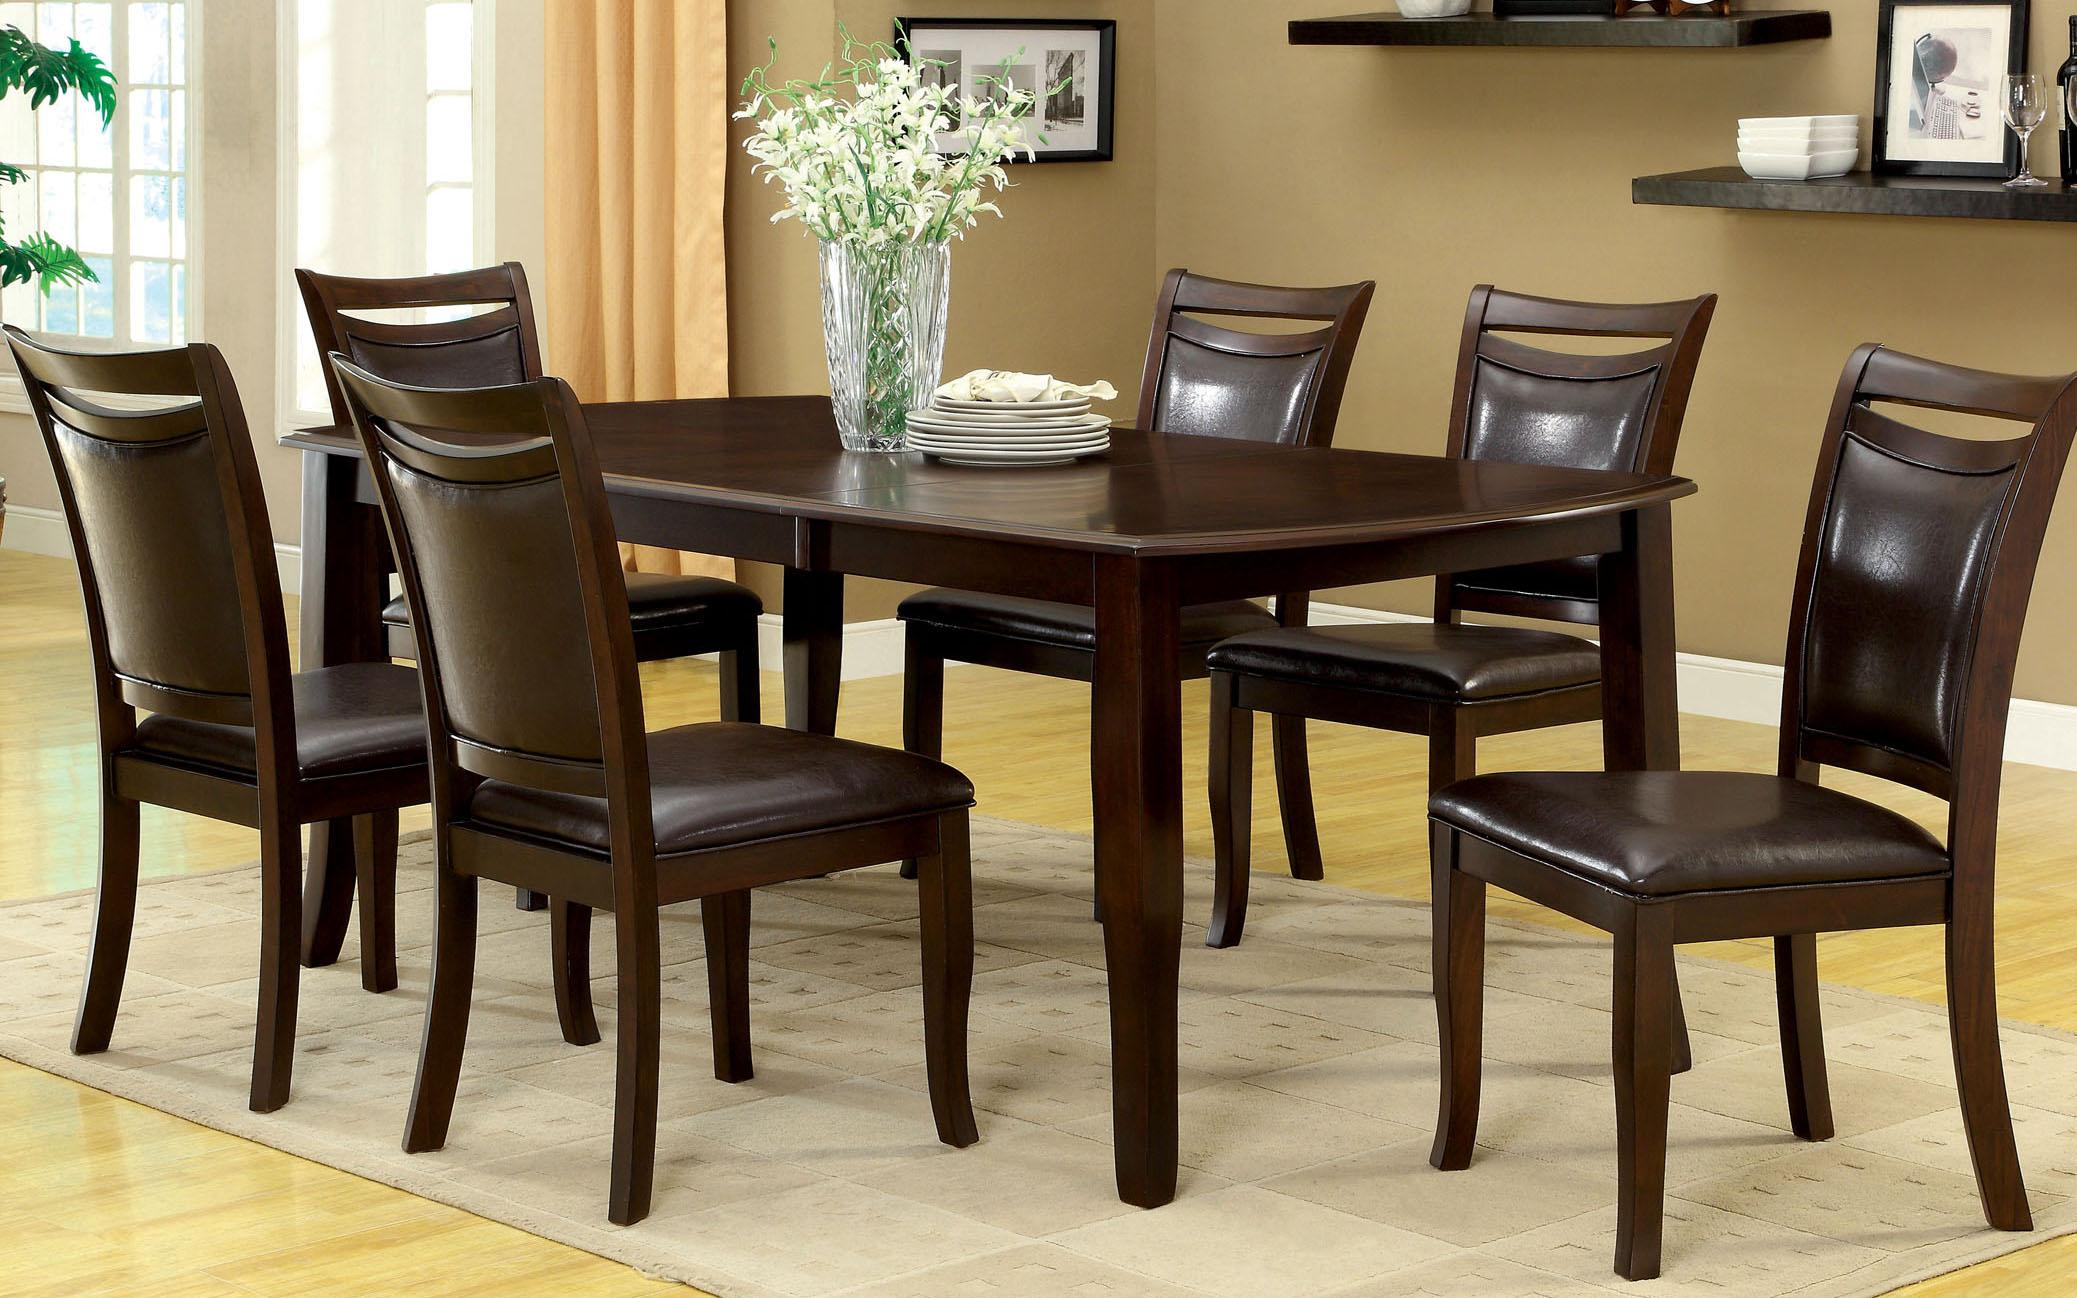 Amazoncom Furniture Of America Carlson Piece Dining Table Set - Walnut color dining table